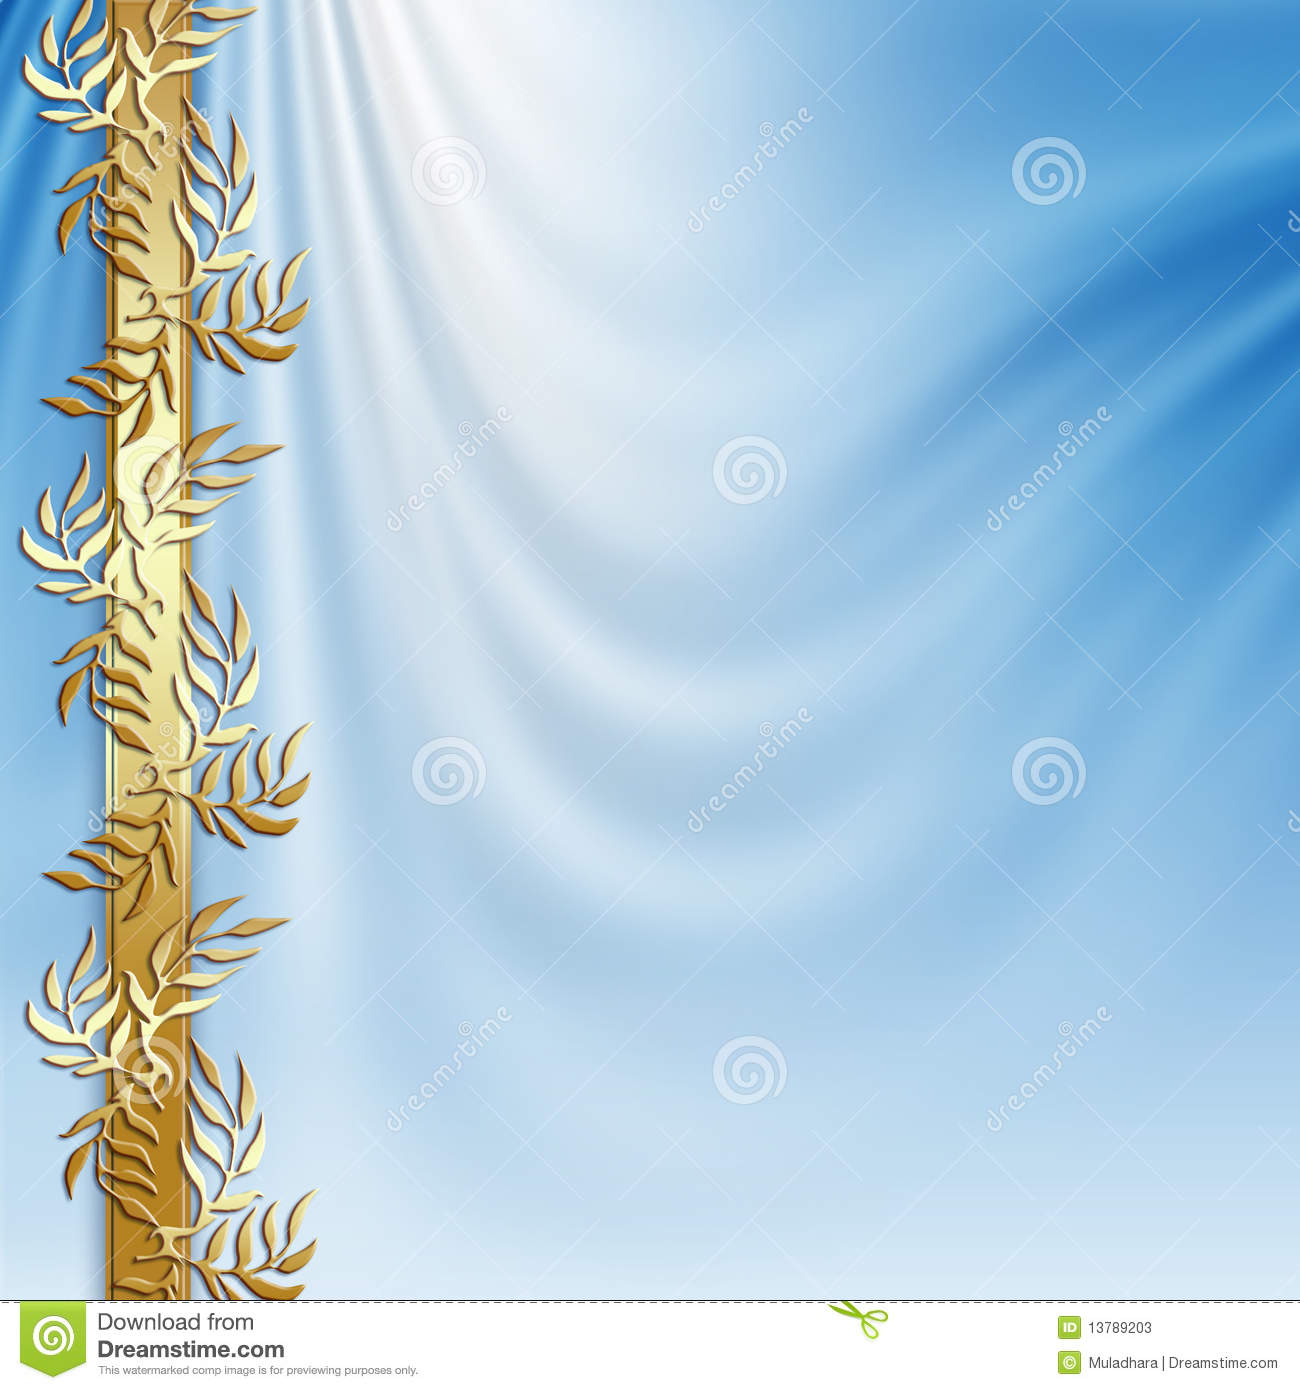 Design Patterns For Invitation Cards with nice invitations sample